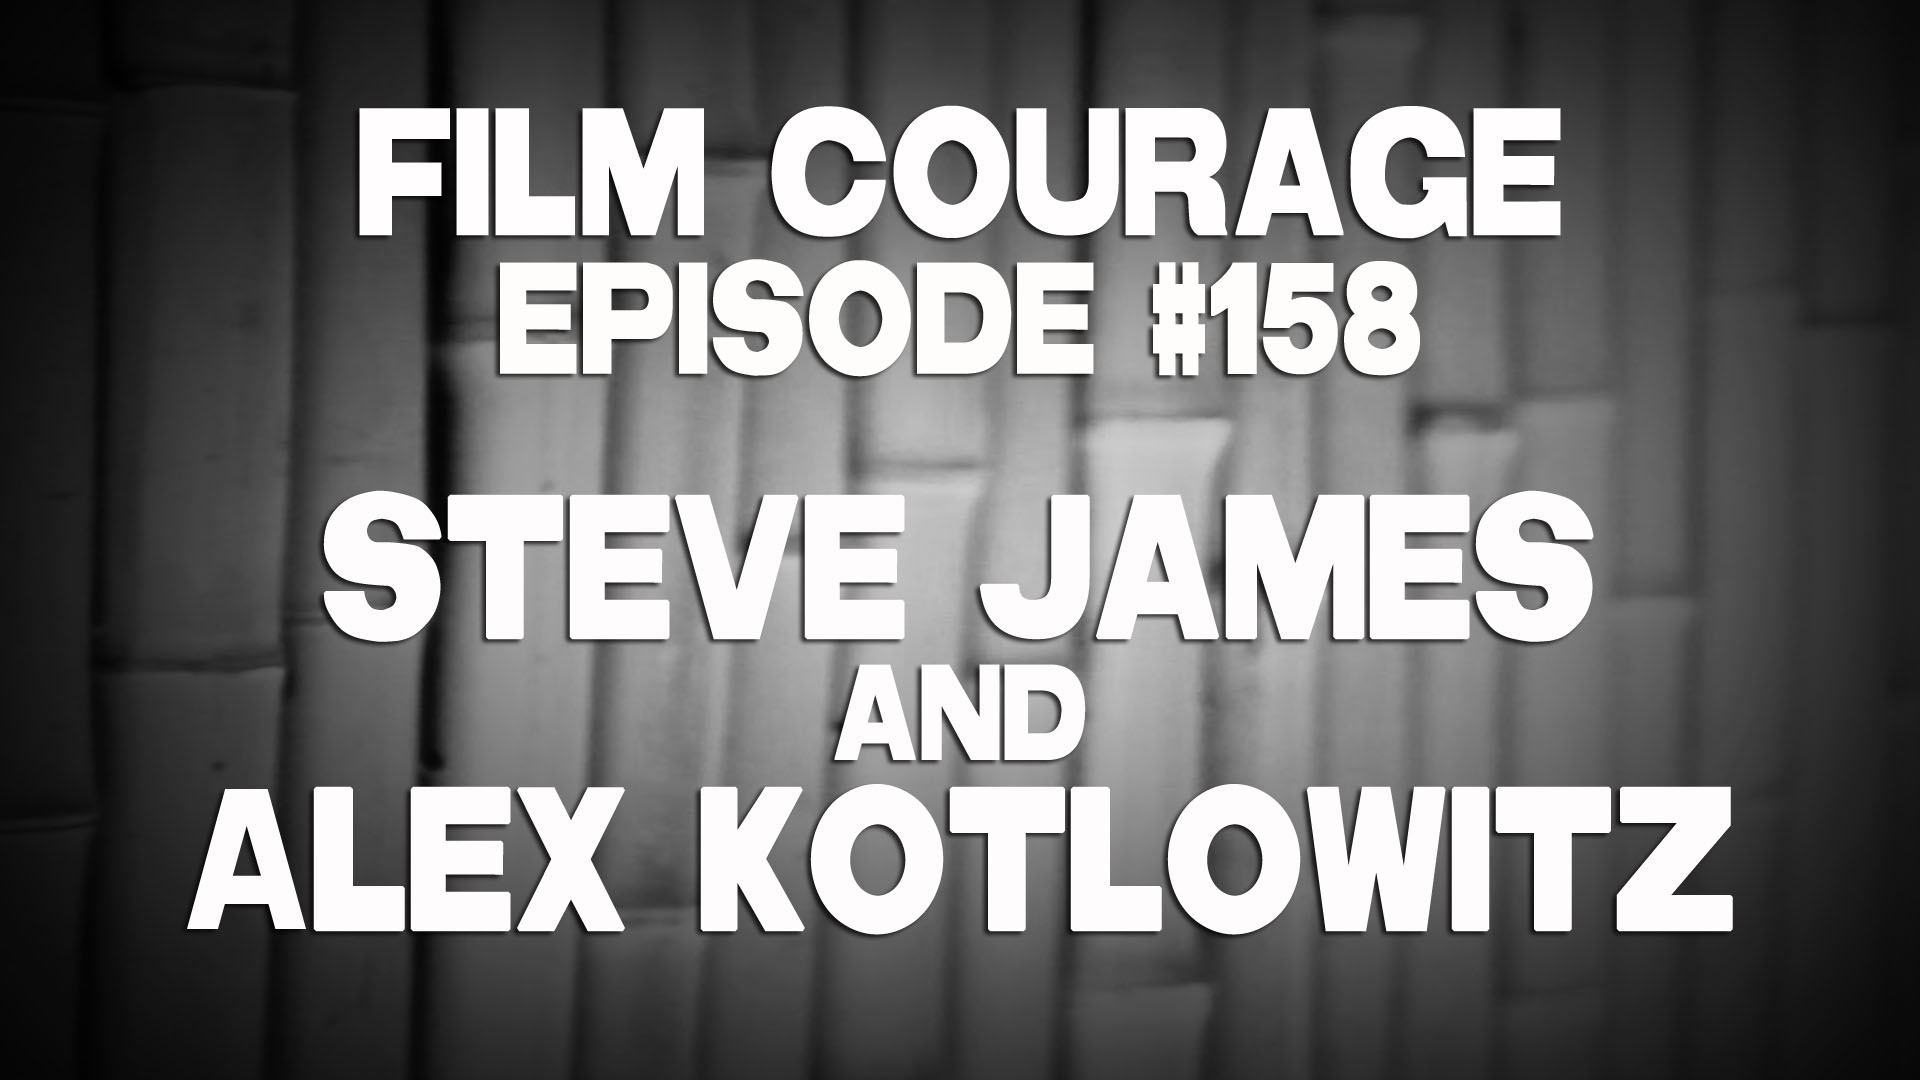 Film Courage #158 Steve James & Alex Kotlowitz